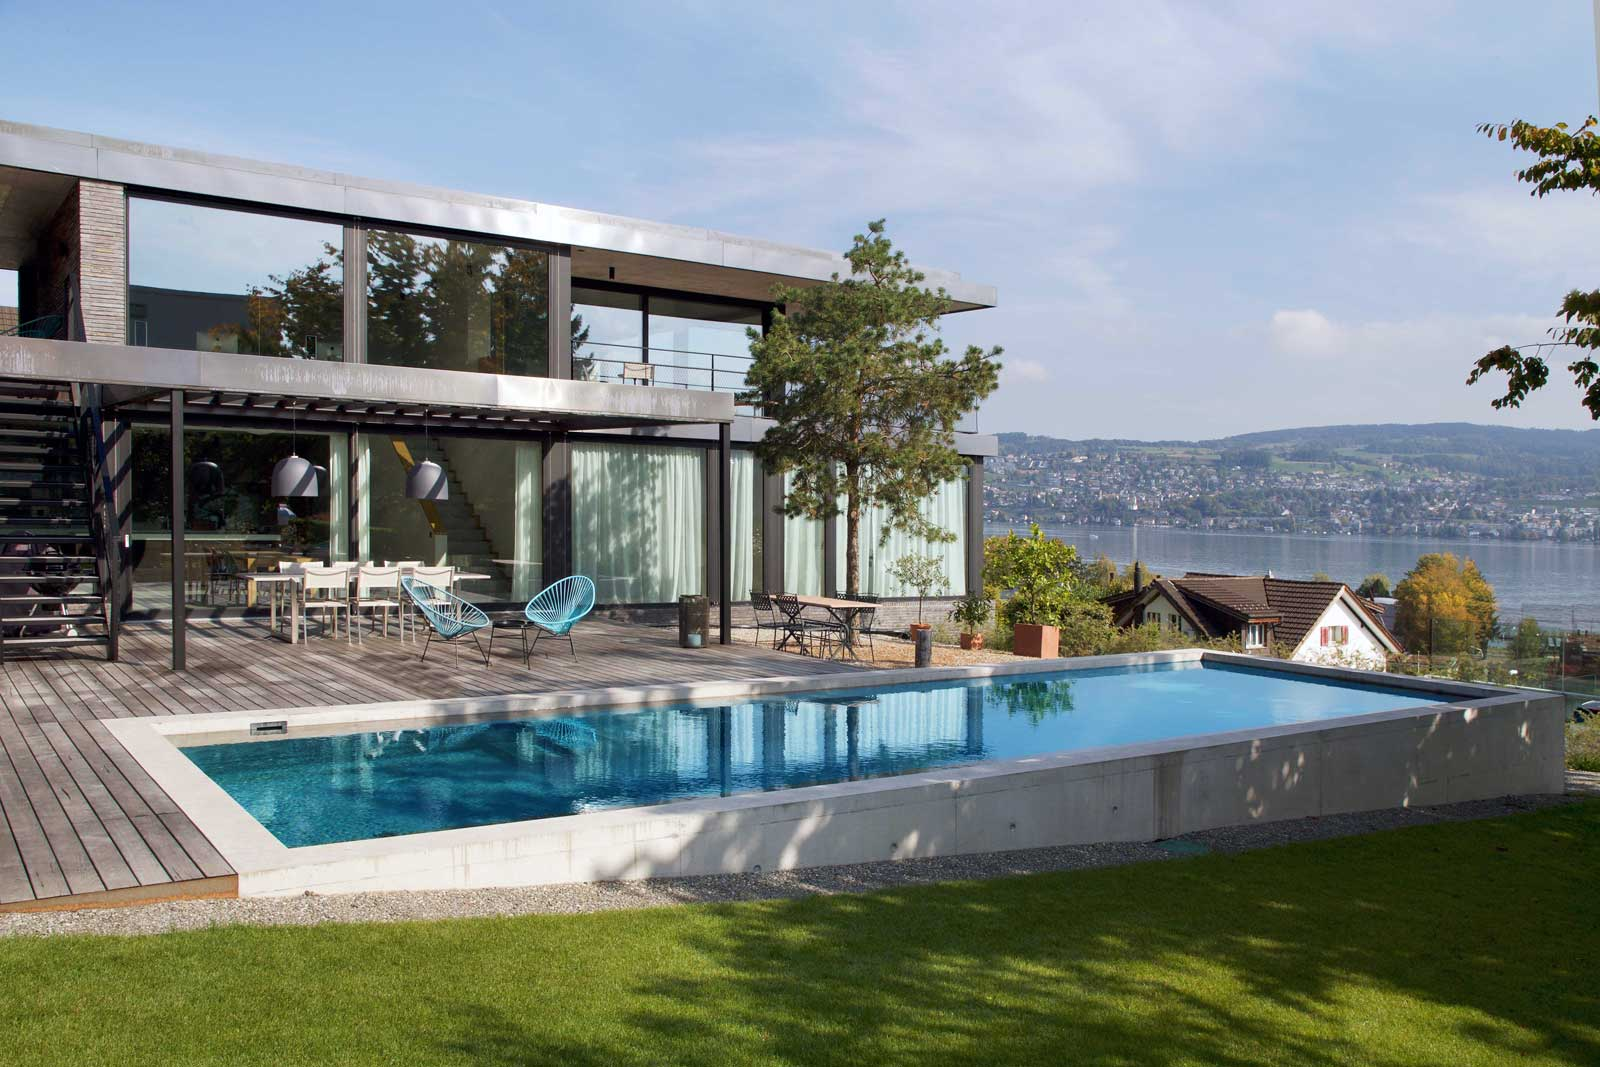 Custom swimming pools in different shapes and colours from Vita Bad AG, Switzerland